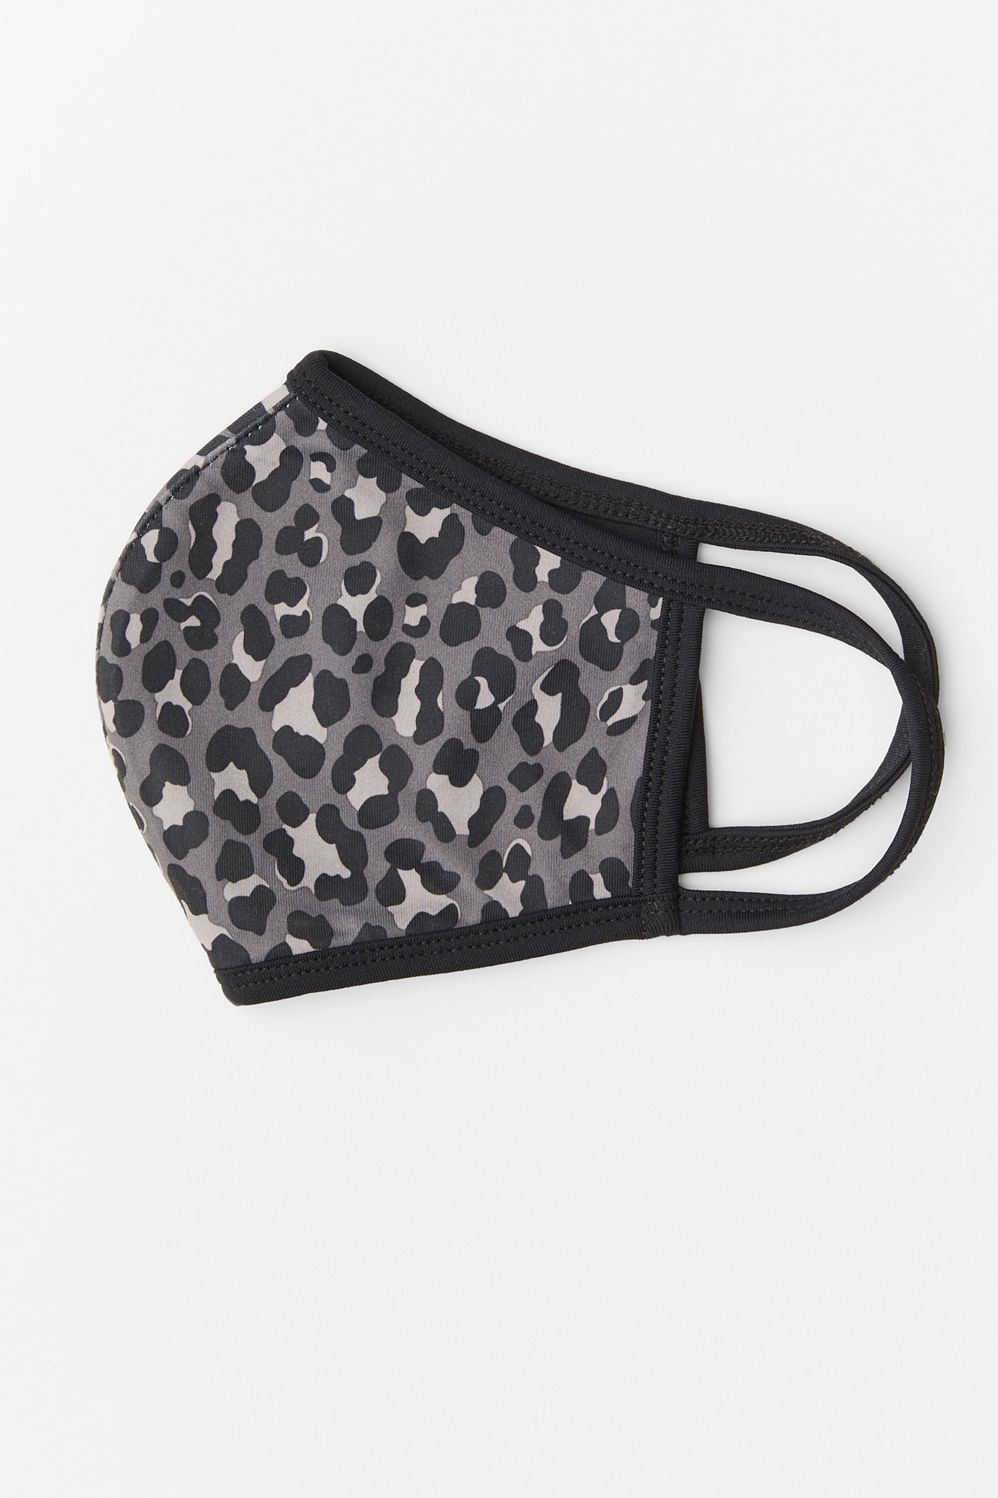 Upcycled from our surplus legging fabric, our reusable, washable, non-medical-grade masks help us look out for each other. In the cutest prints from our archives, they?re designed to fit over the top of the nose and below the chin with secure straps.